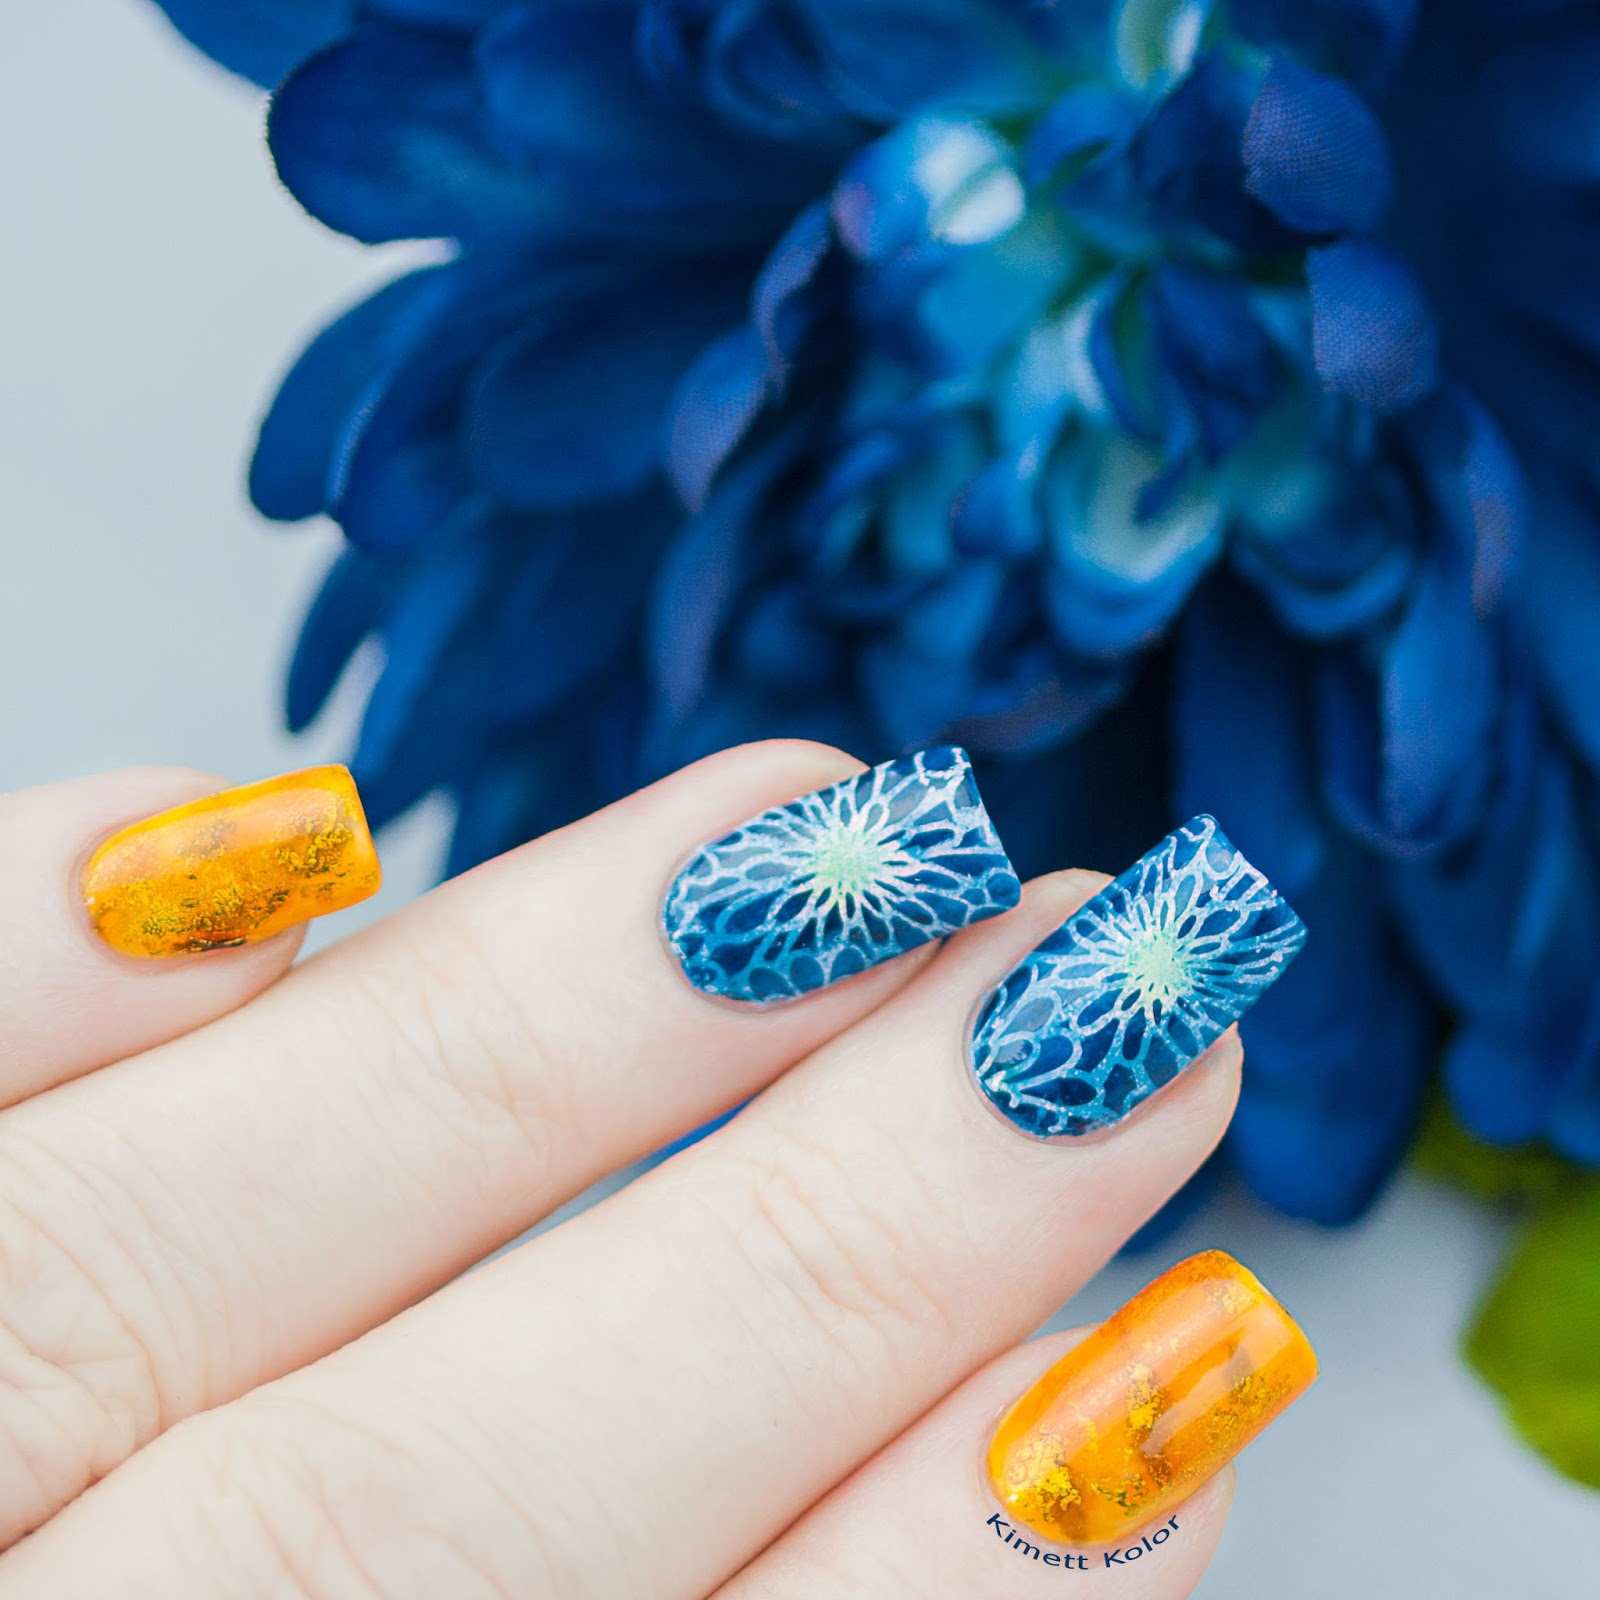 KimettKolor November Theme Topaz Chrysanthemum Nail Art